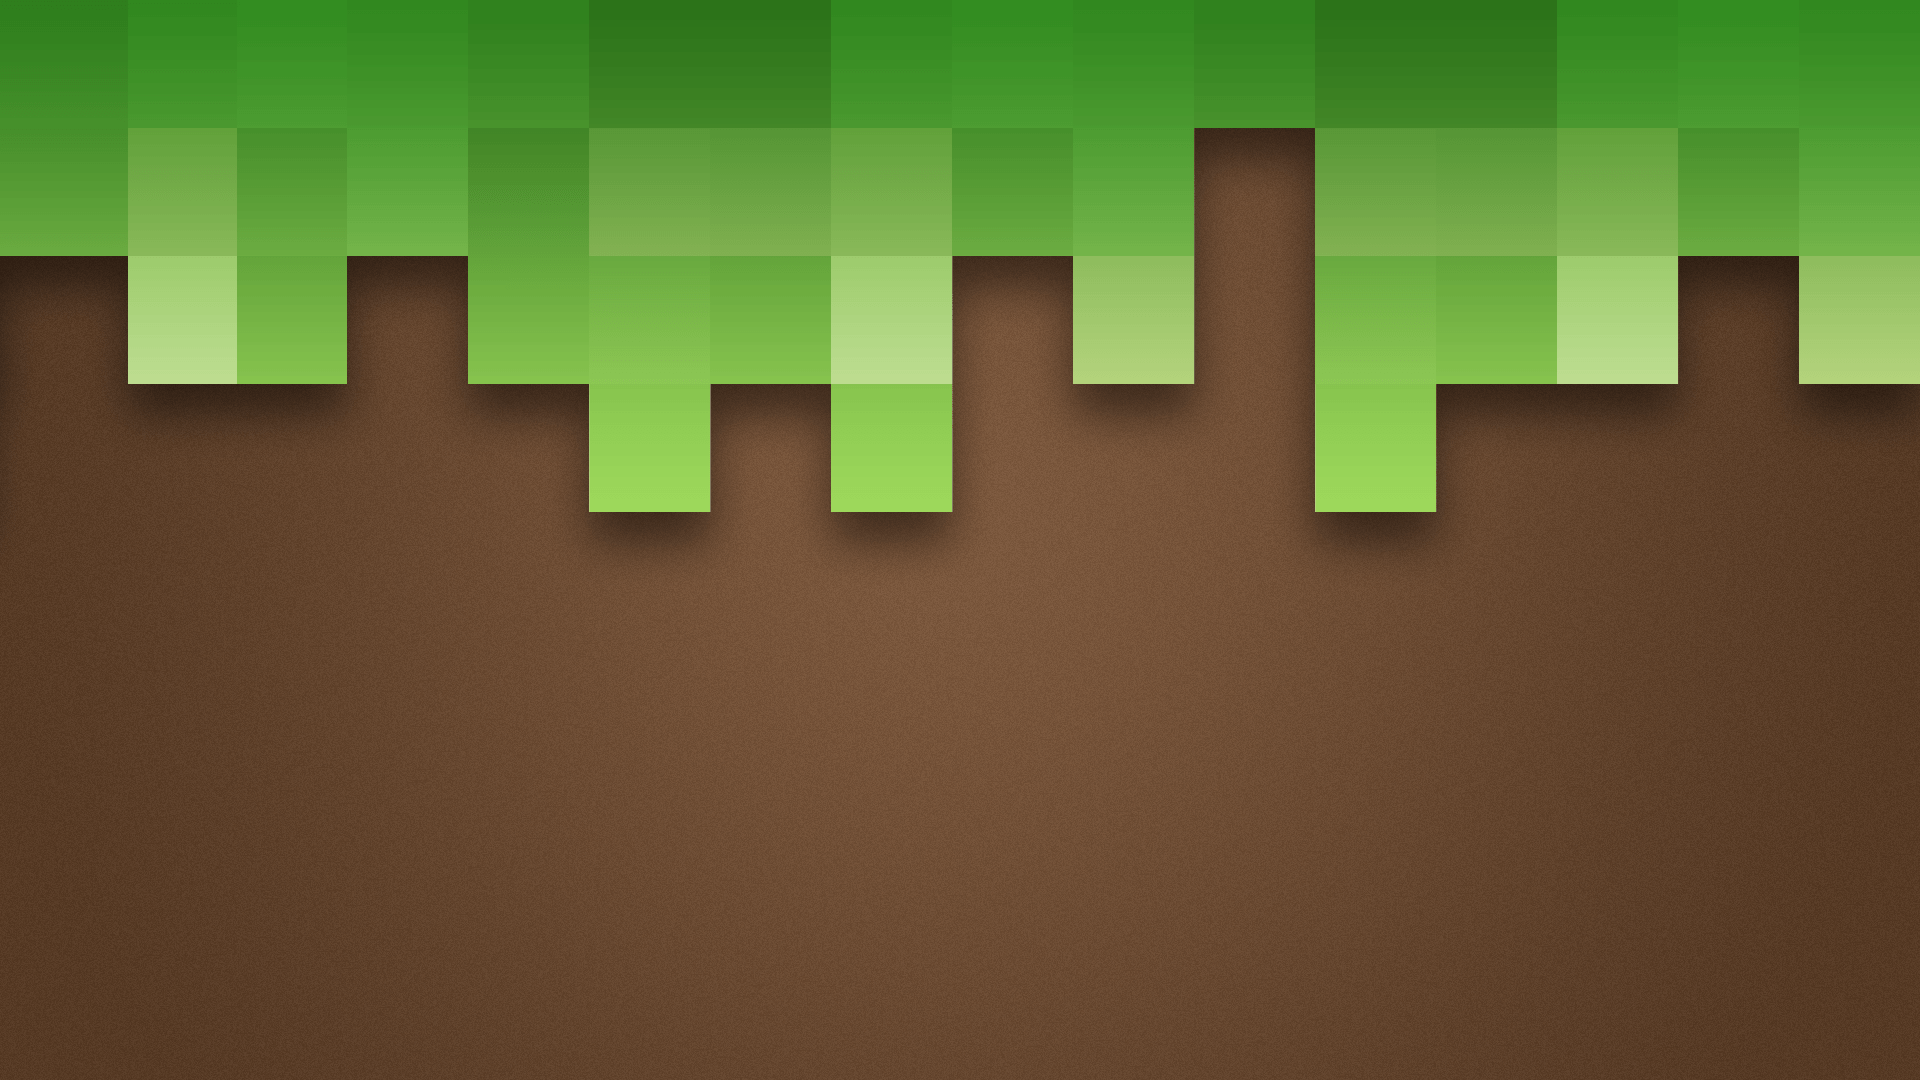 Minecraft Hd Phone Wallpapers Top Free Minecraft Hd Phone